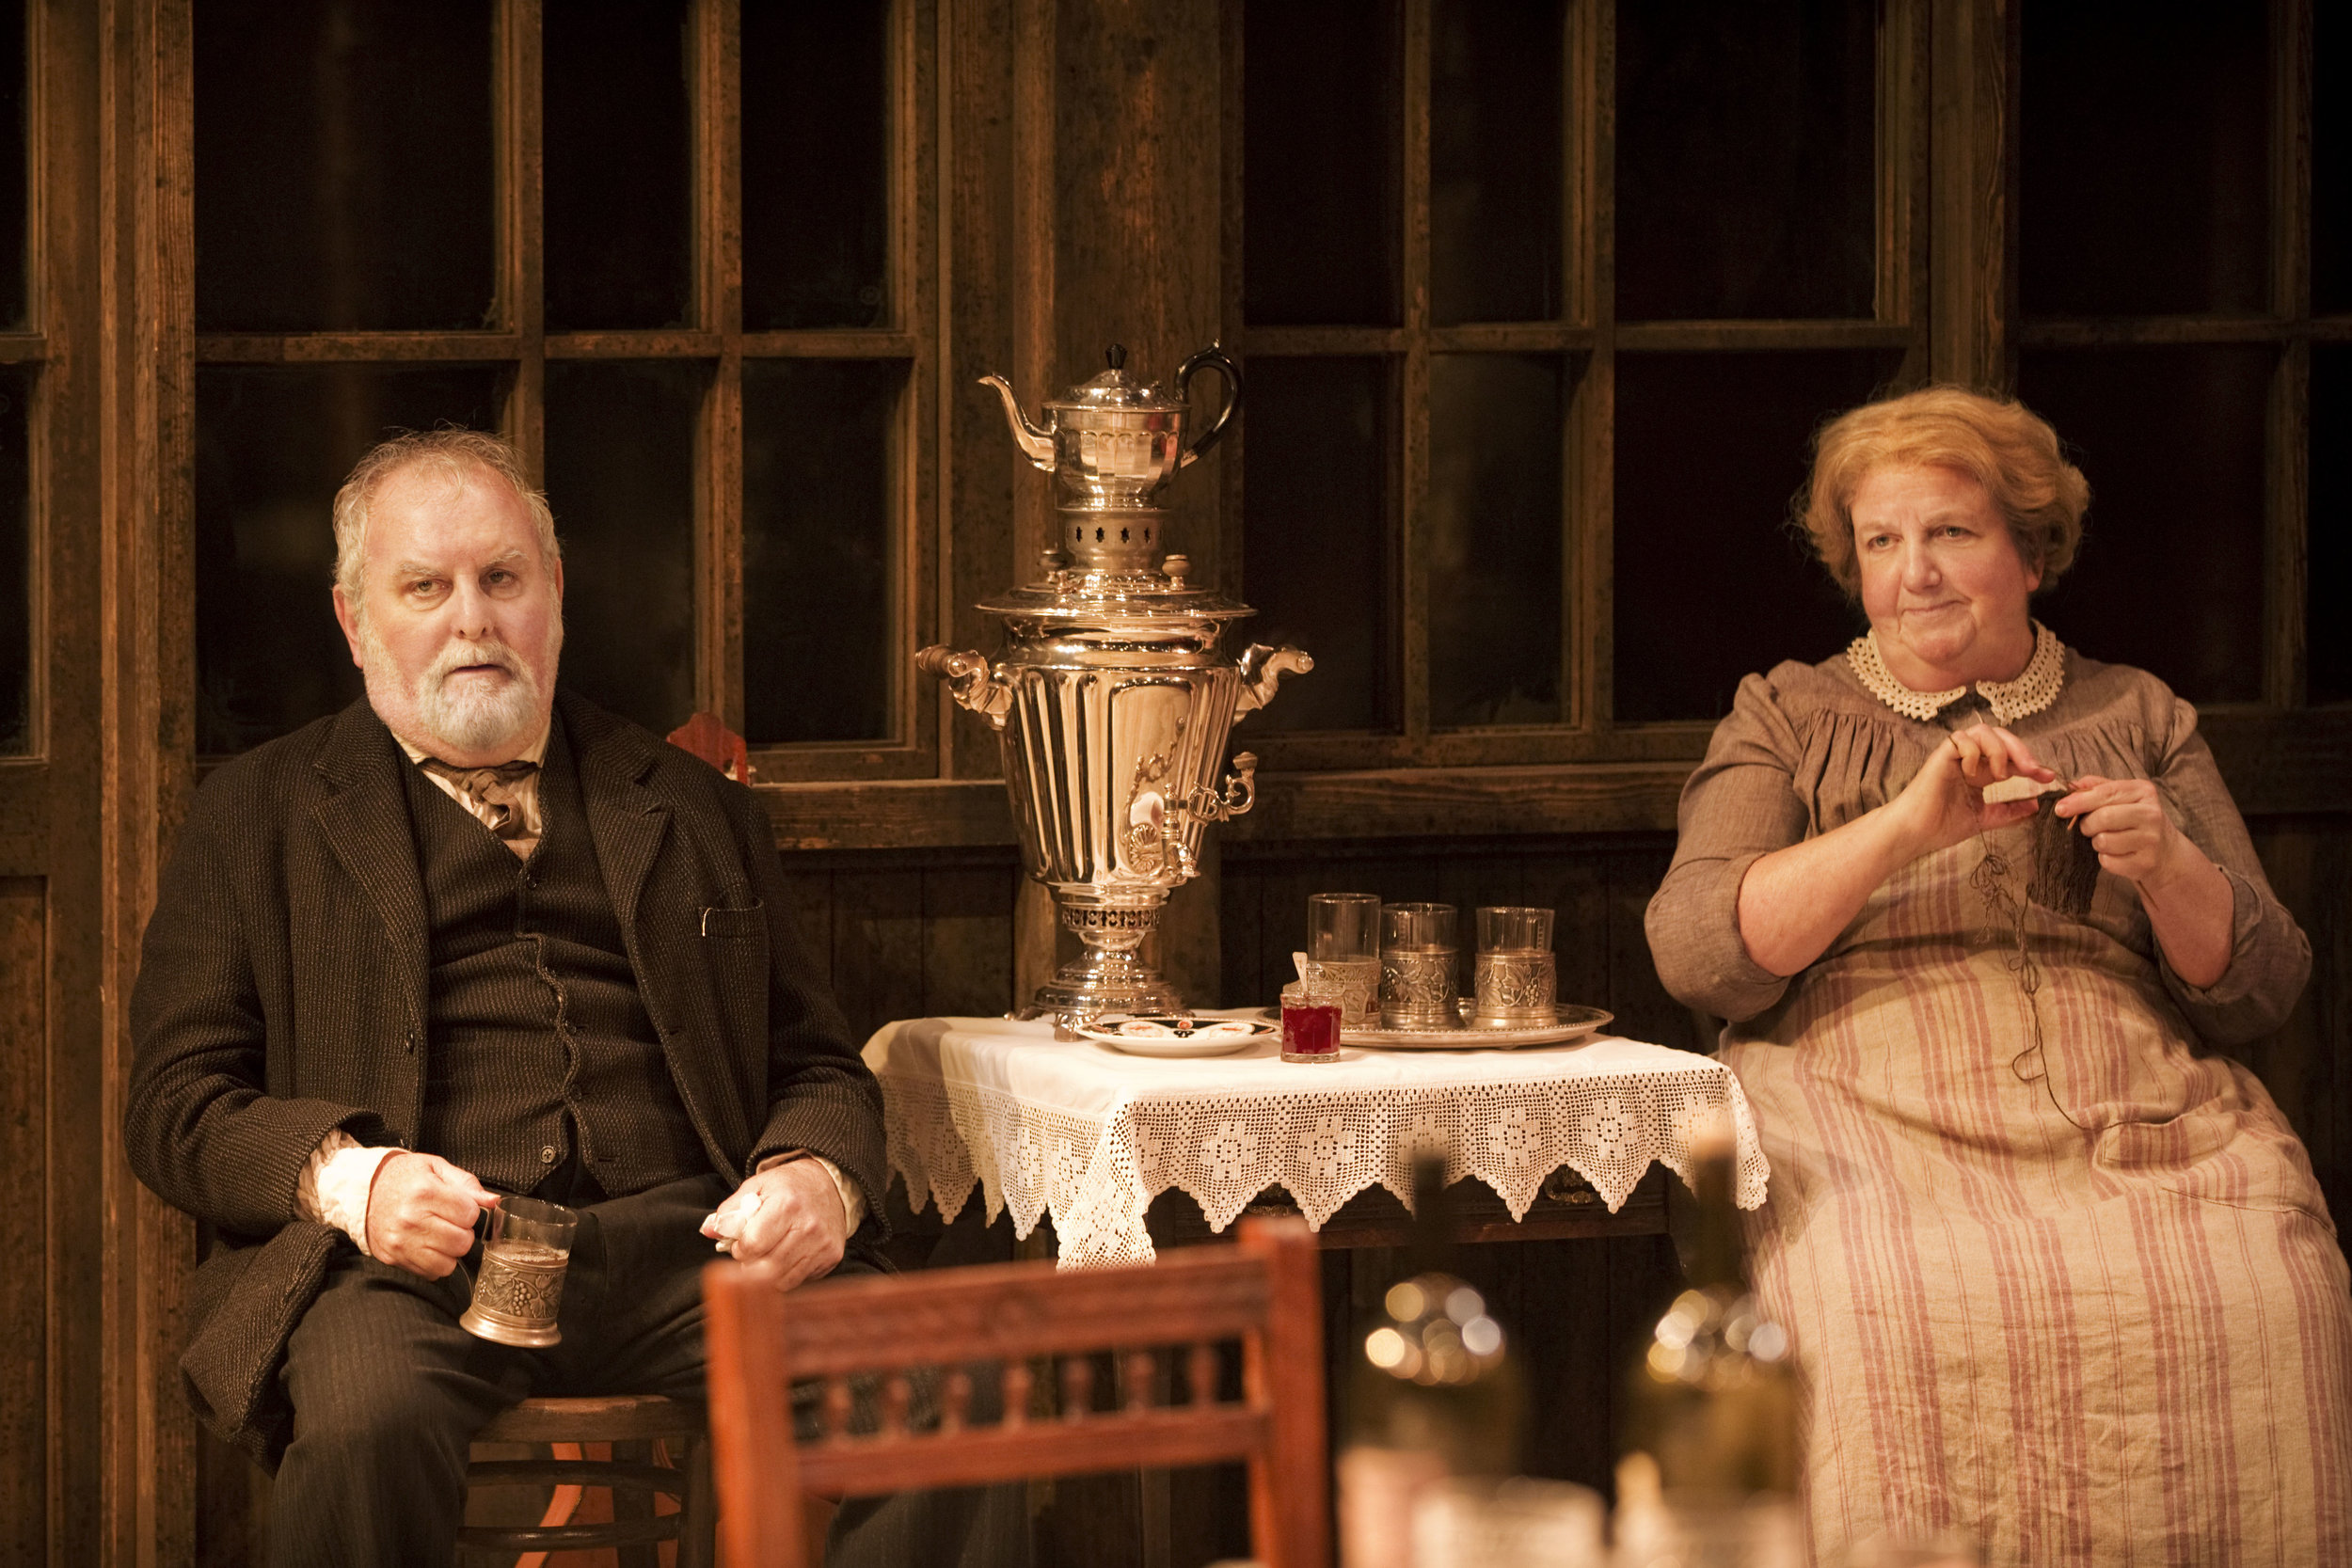 3. CFTunclevan2012JP_01080 Anthony O'Donnell (Telegin) and Maggie McCarthy (Marina) in Uncle Vanya Photo by Johan Persson.jpg